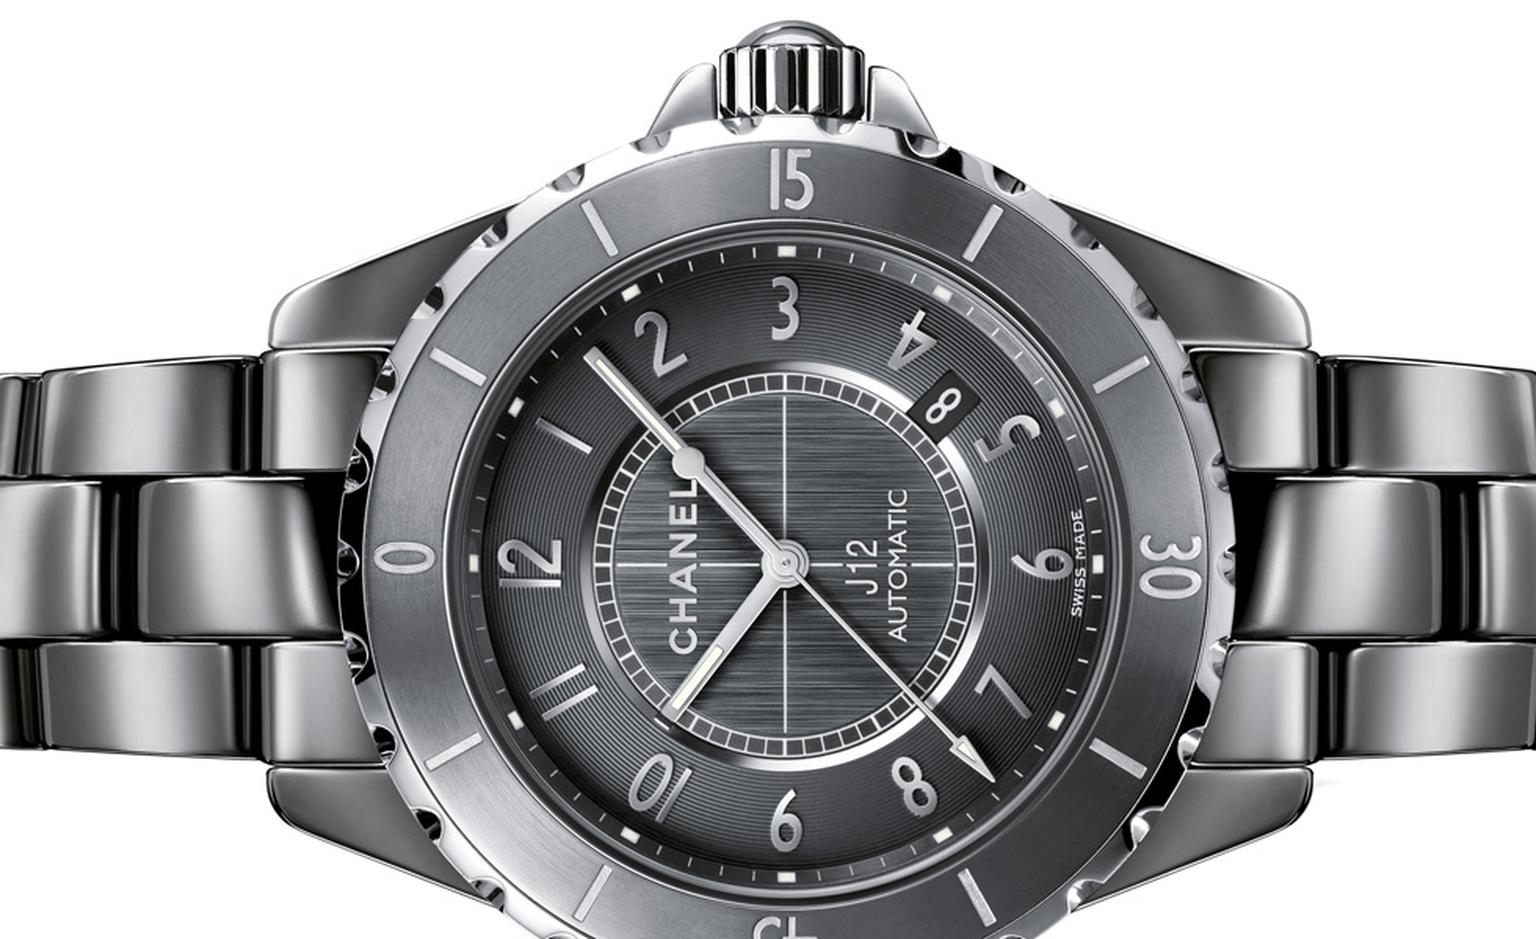 Chanel J12 Chromatic 41 mm with automatic movement and water resistant to 200 meters.